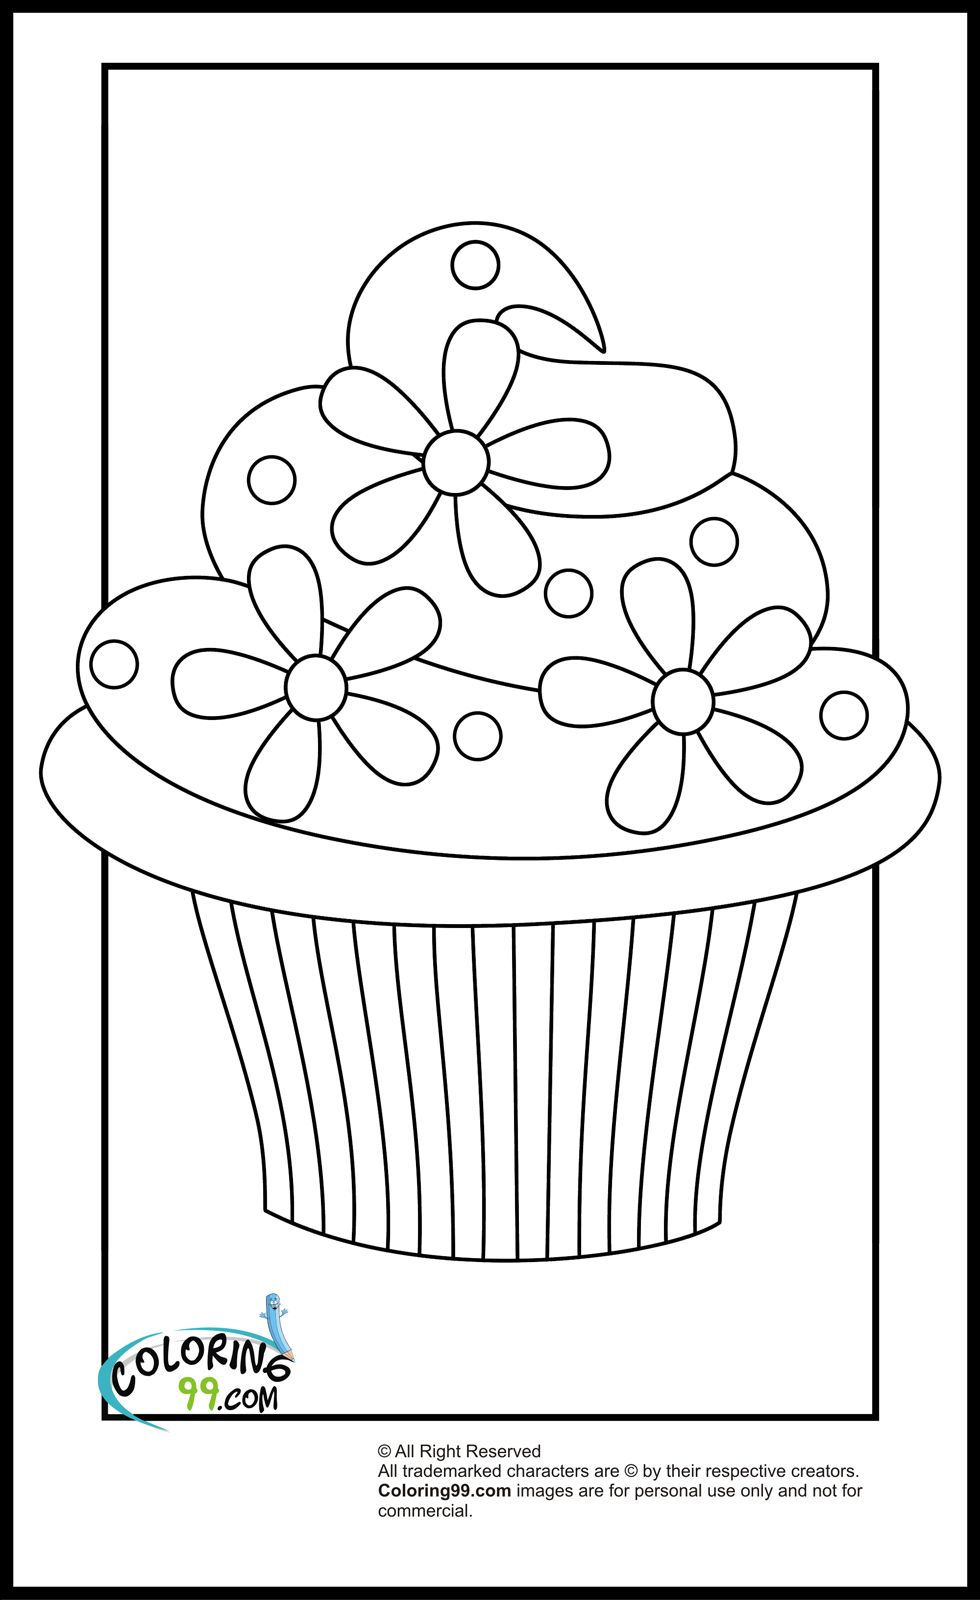 cupcake coloring pages free printable cupcake coloring pages